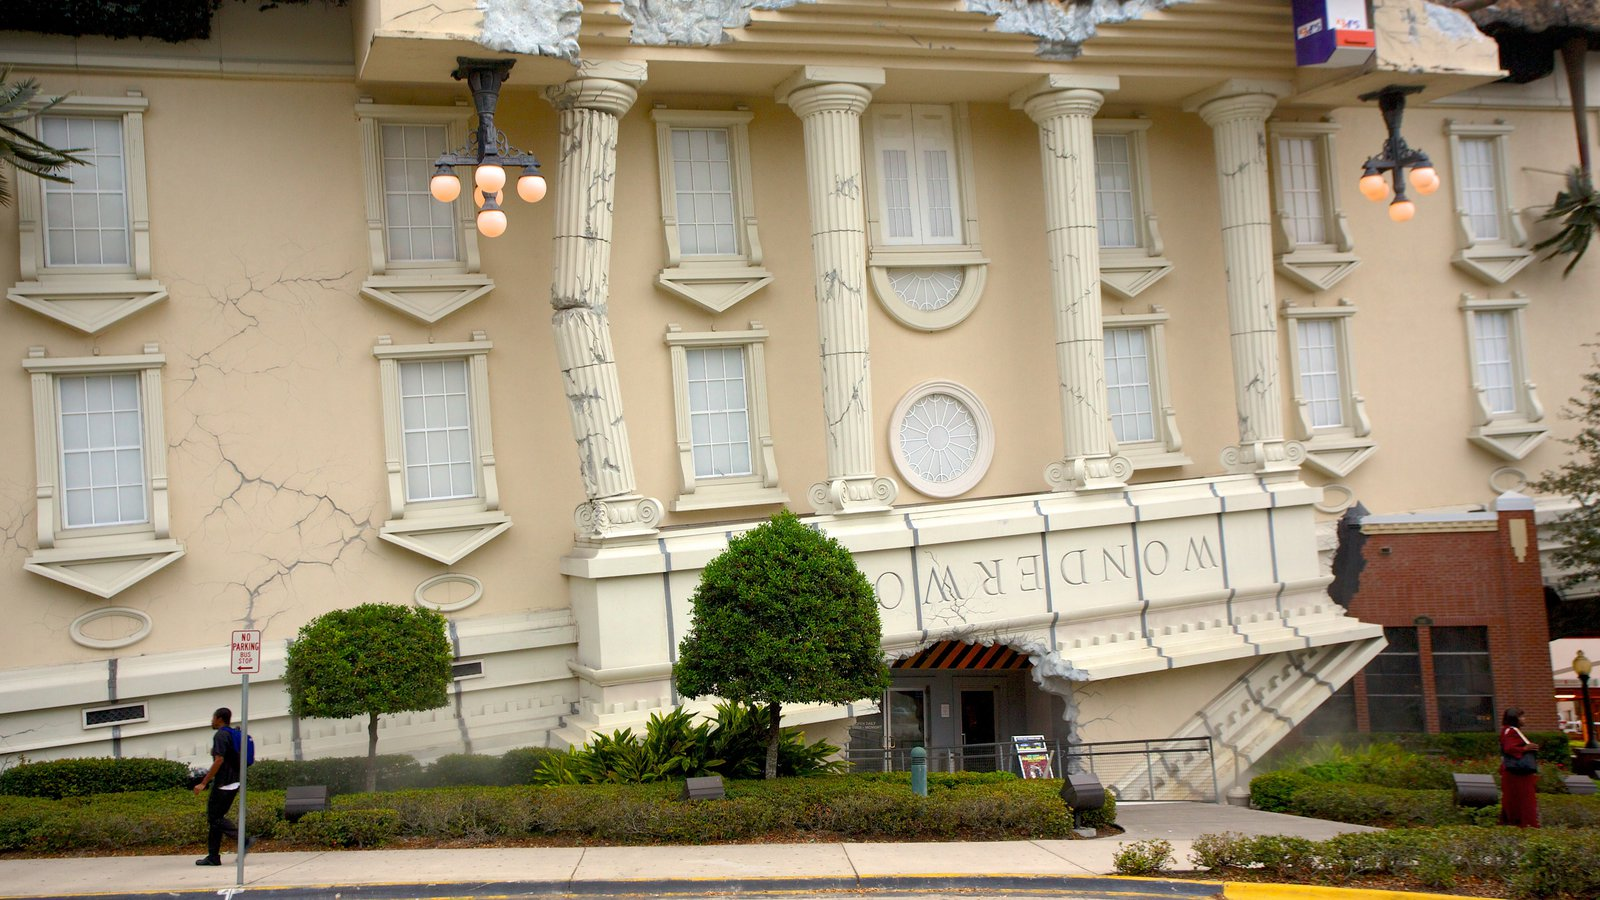 Wonderworks which includes heritage architecture